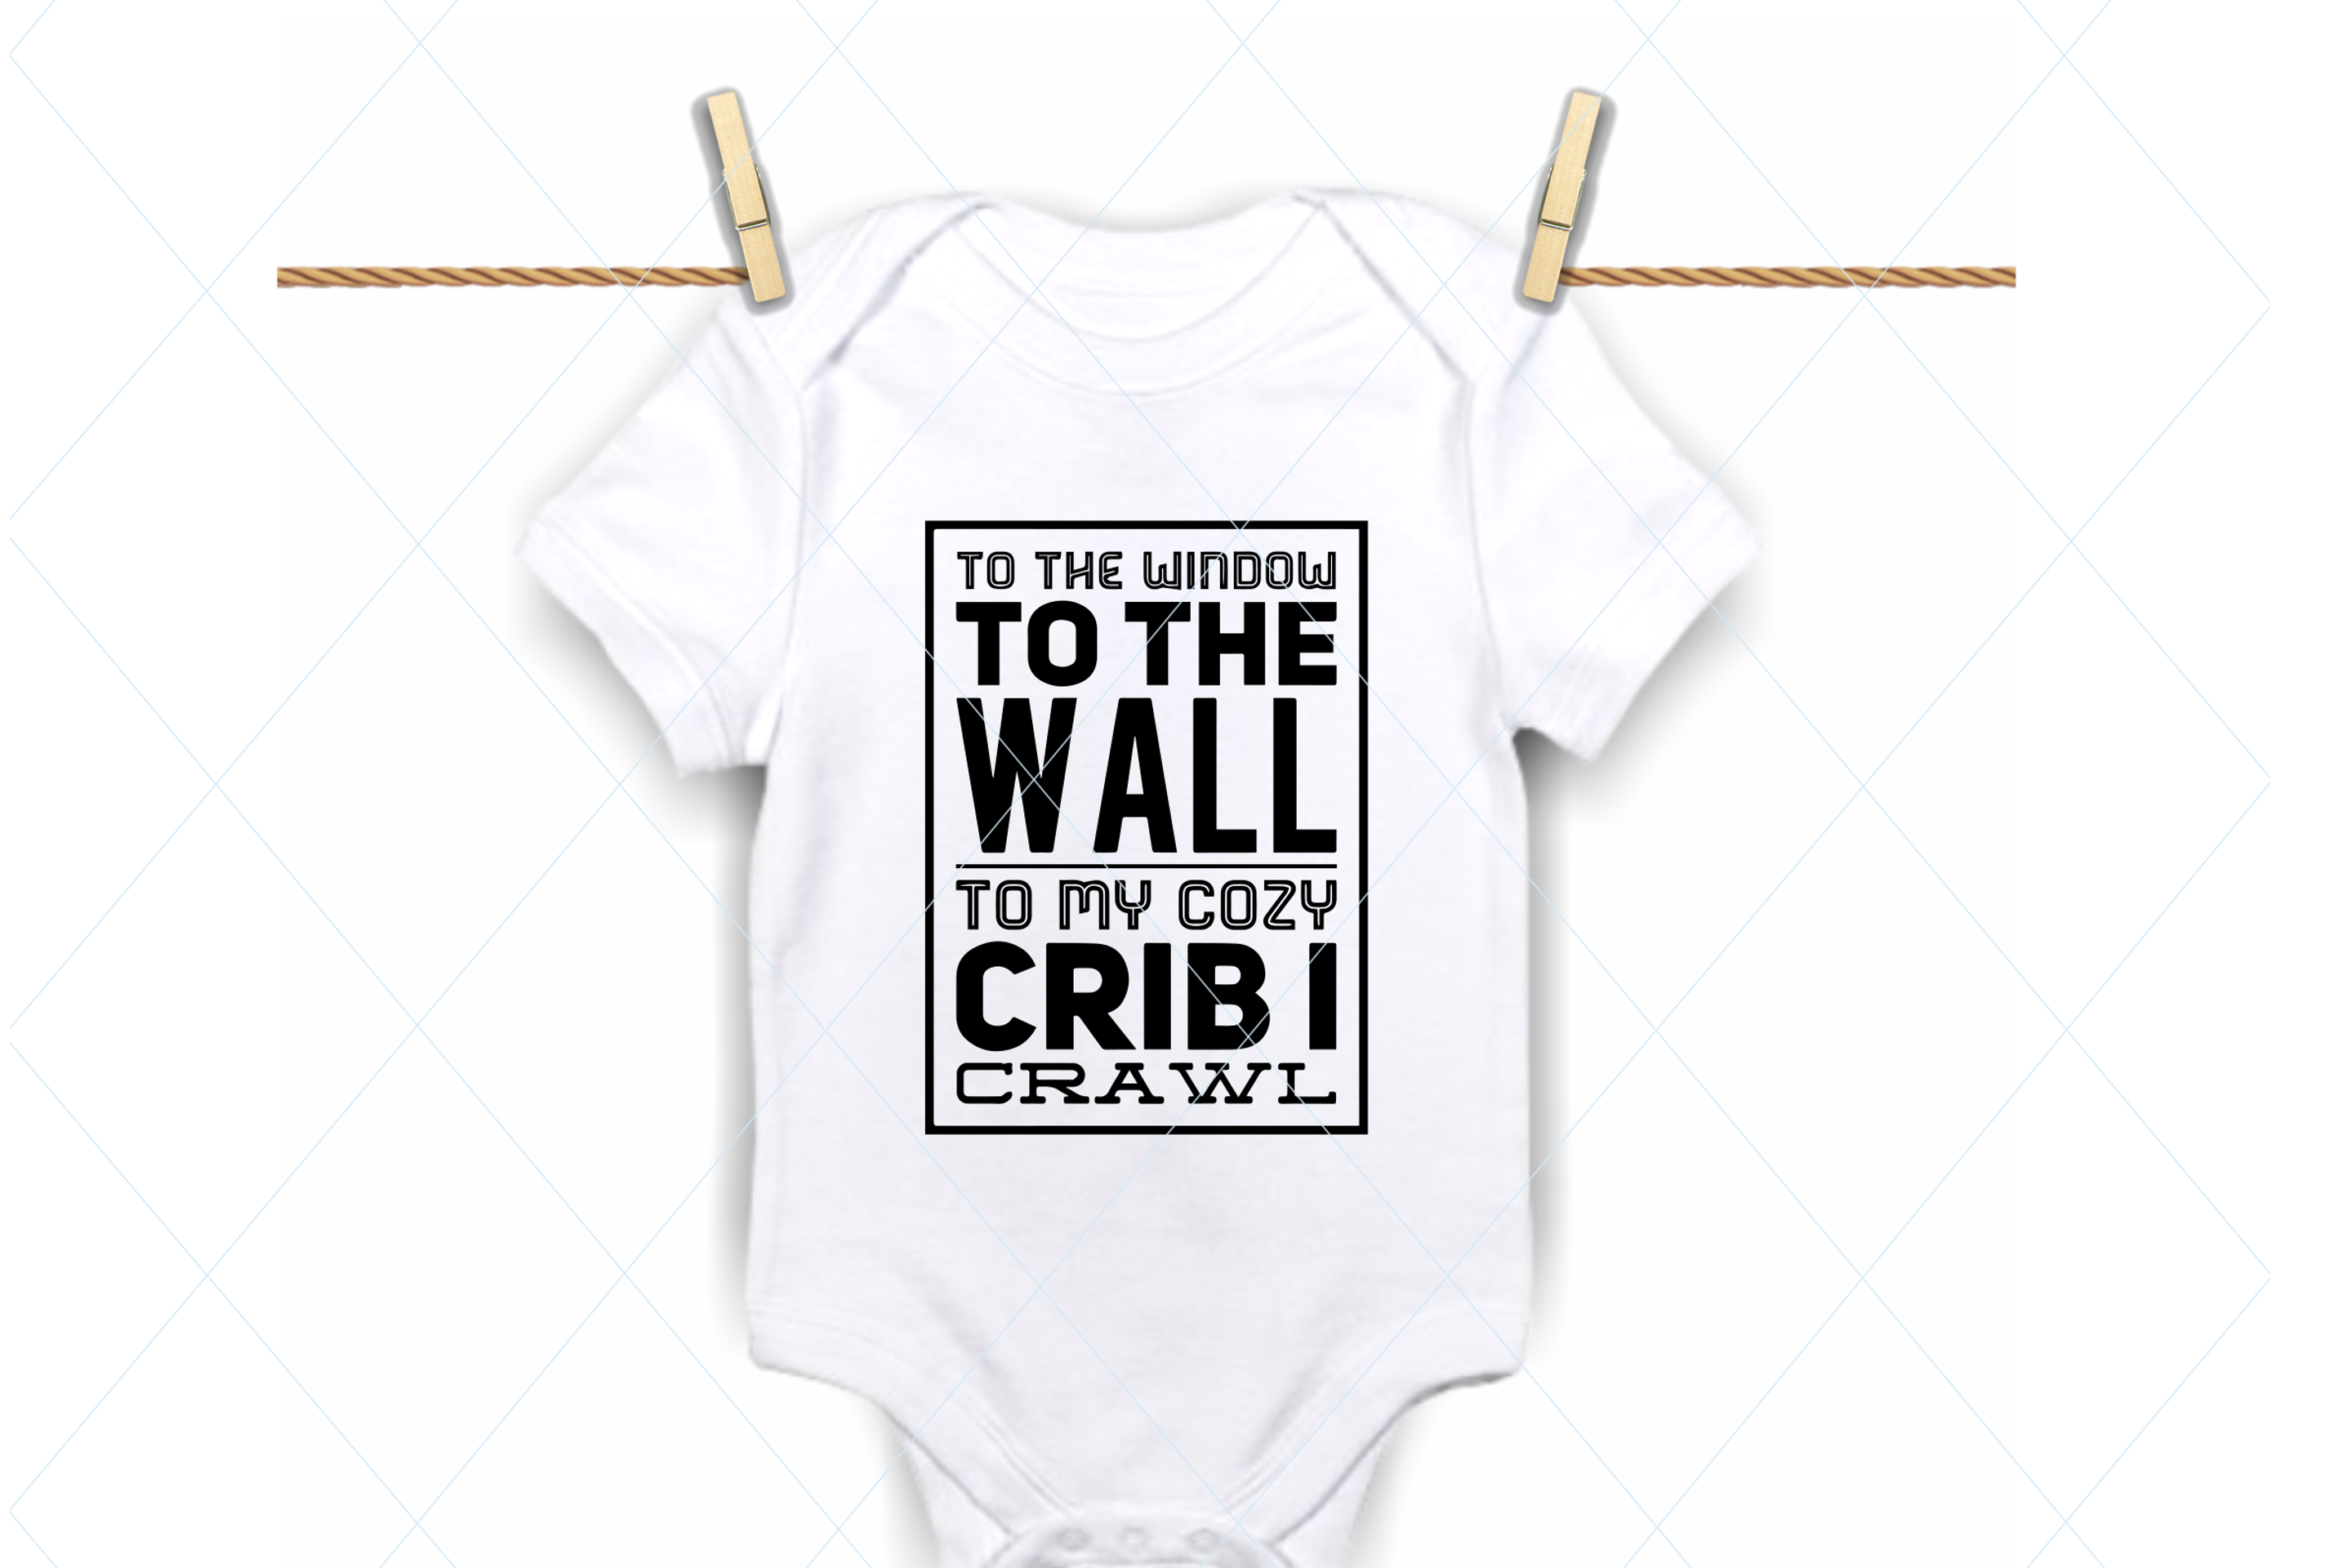 Baby Onesie Funny Baby Bodysuit Graphic By Thelovebyrds